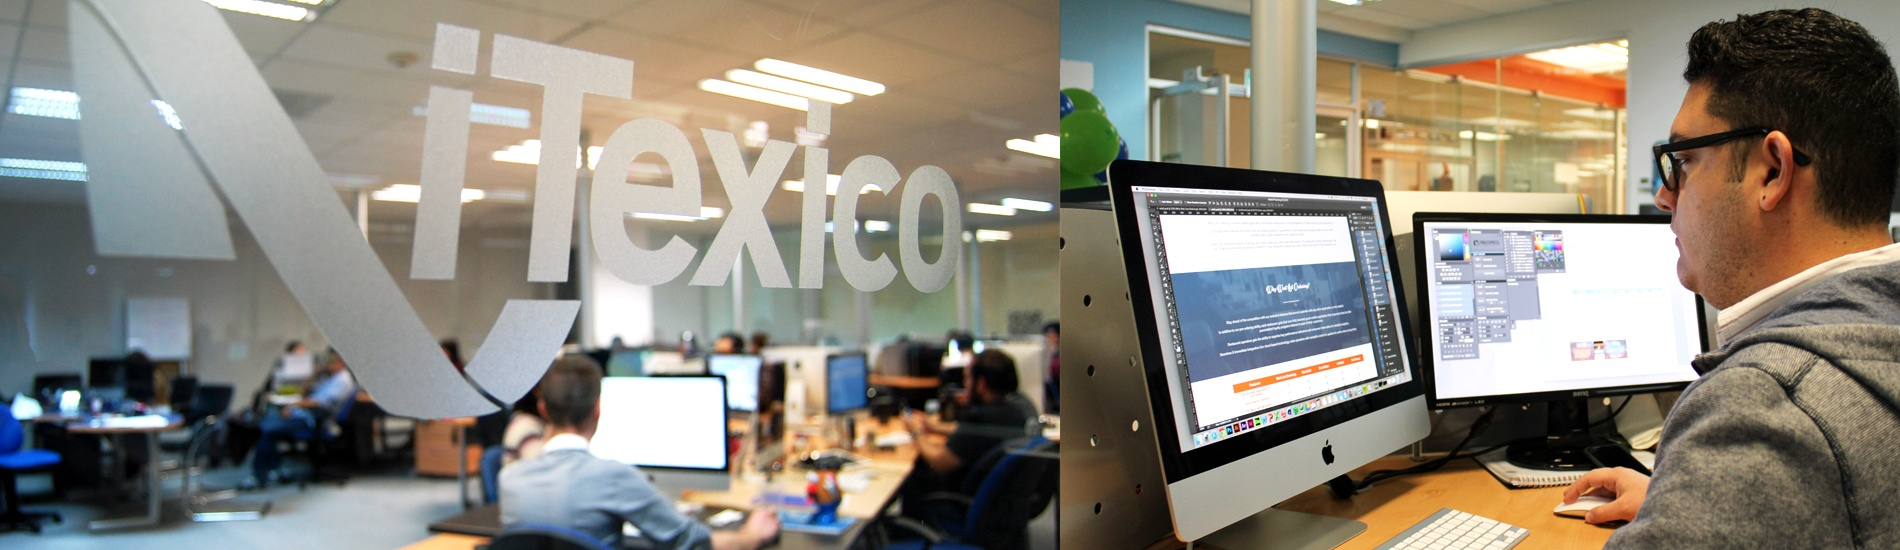 About iTexico